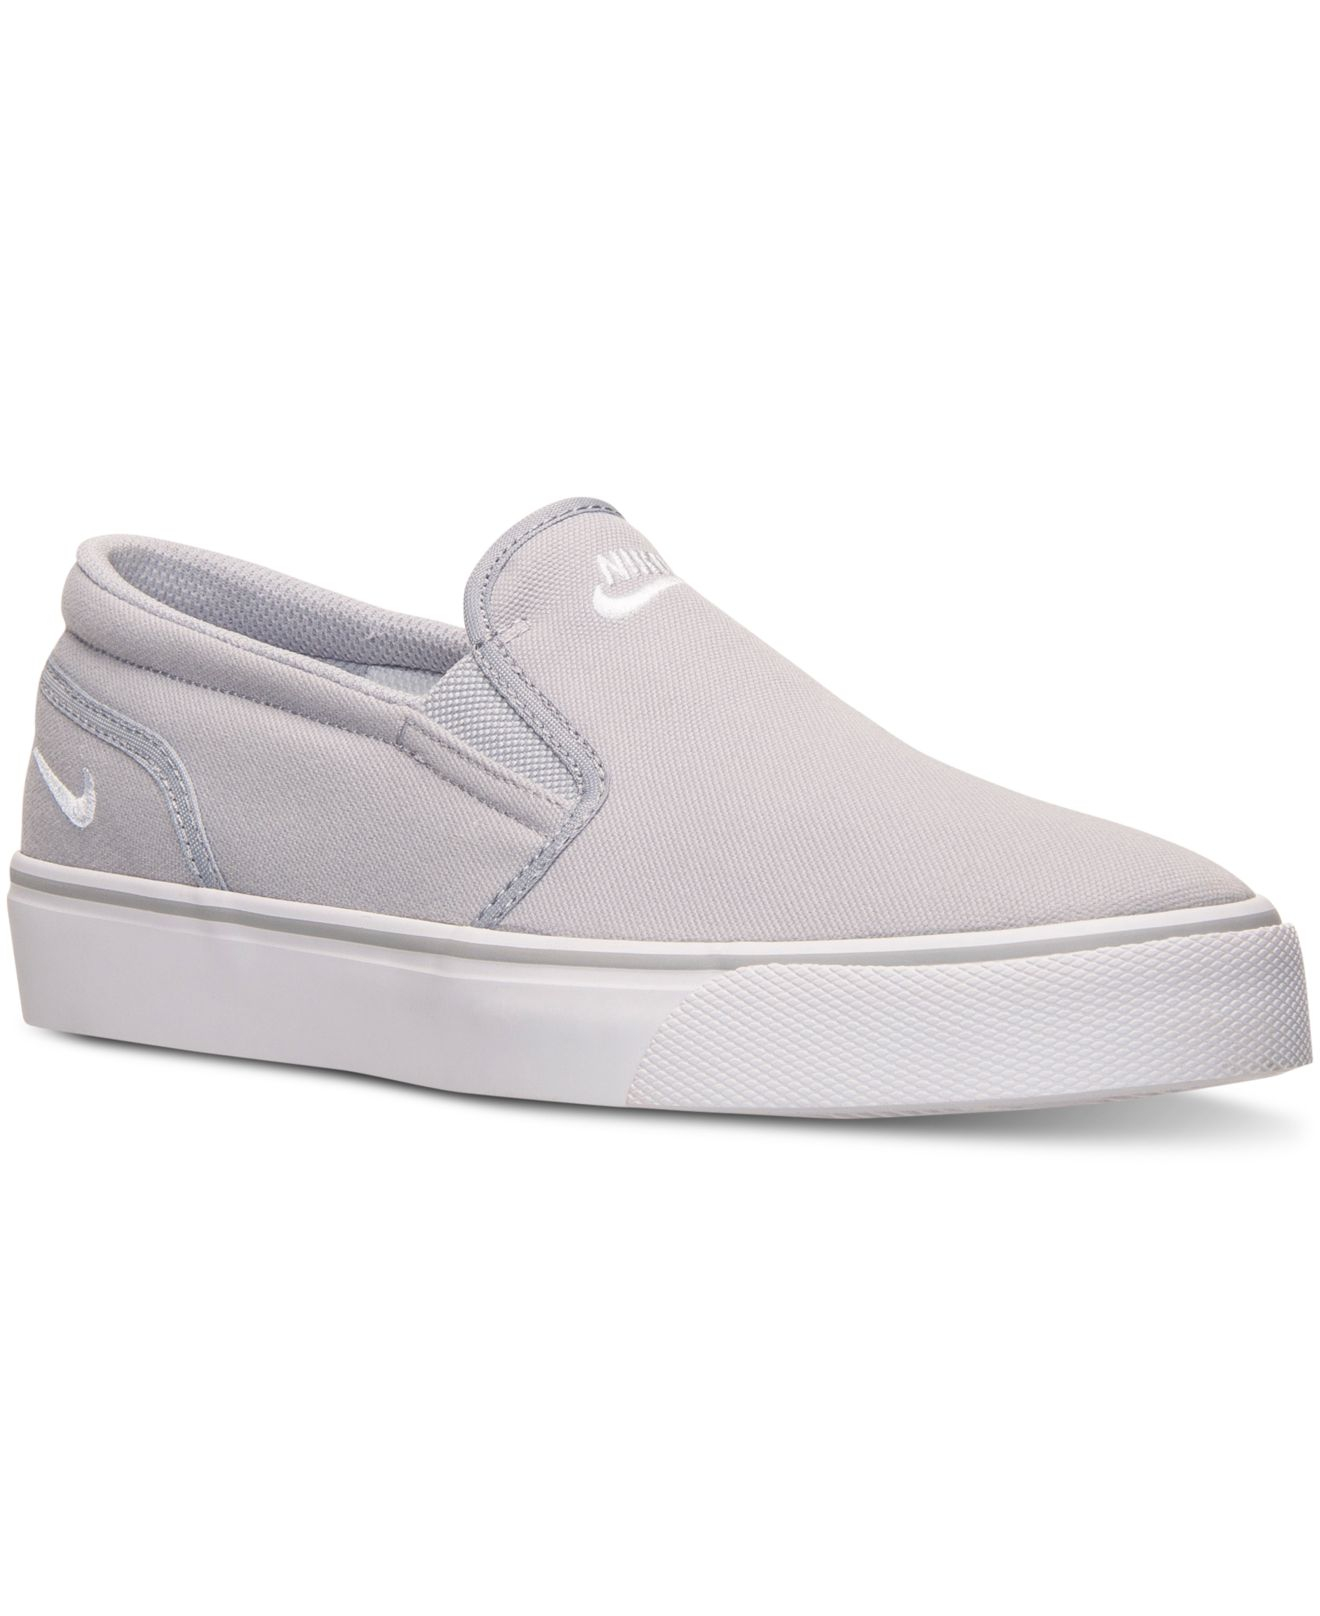 4e0d30a6a37f0e ... Lyst - Nike Men s Toki Low Slip Casual Sneakers From Finish Line in  Gray for  Toki Men s Slip-On Shoes Nike - Z201077 OEy9 ...